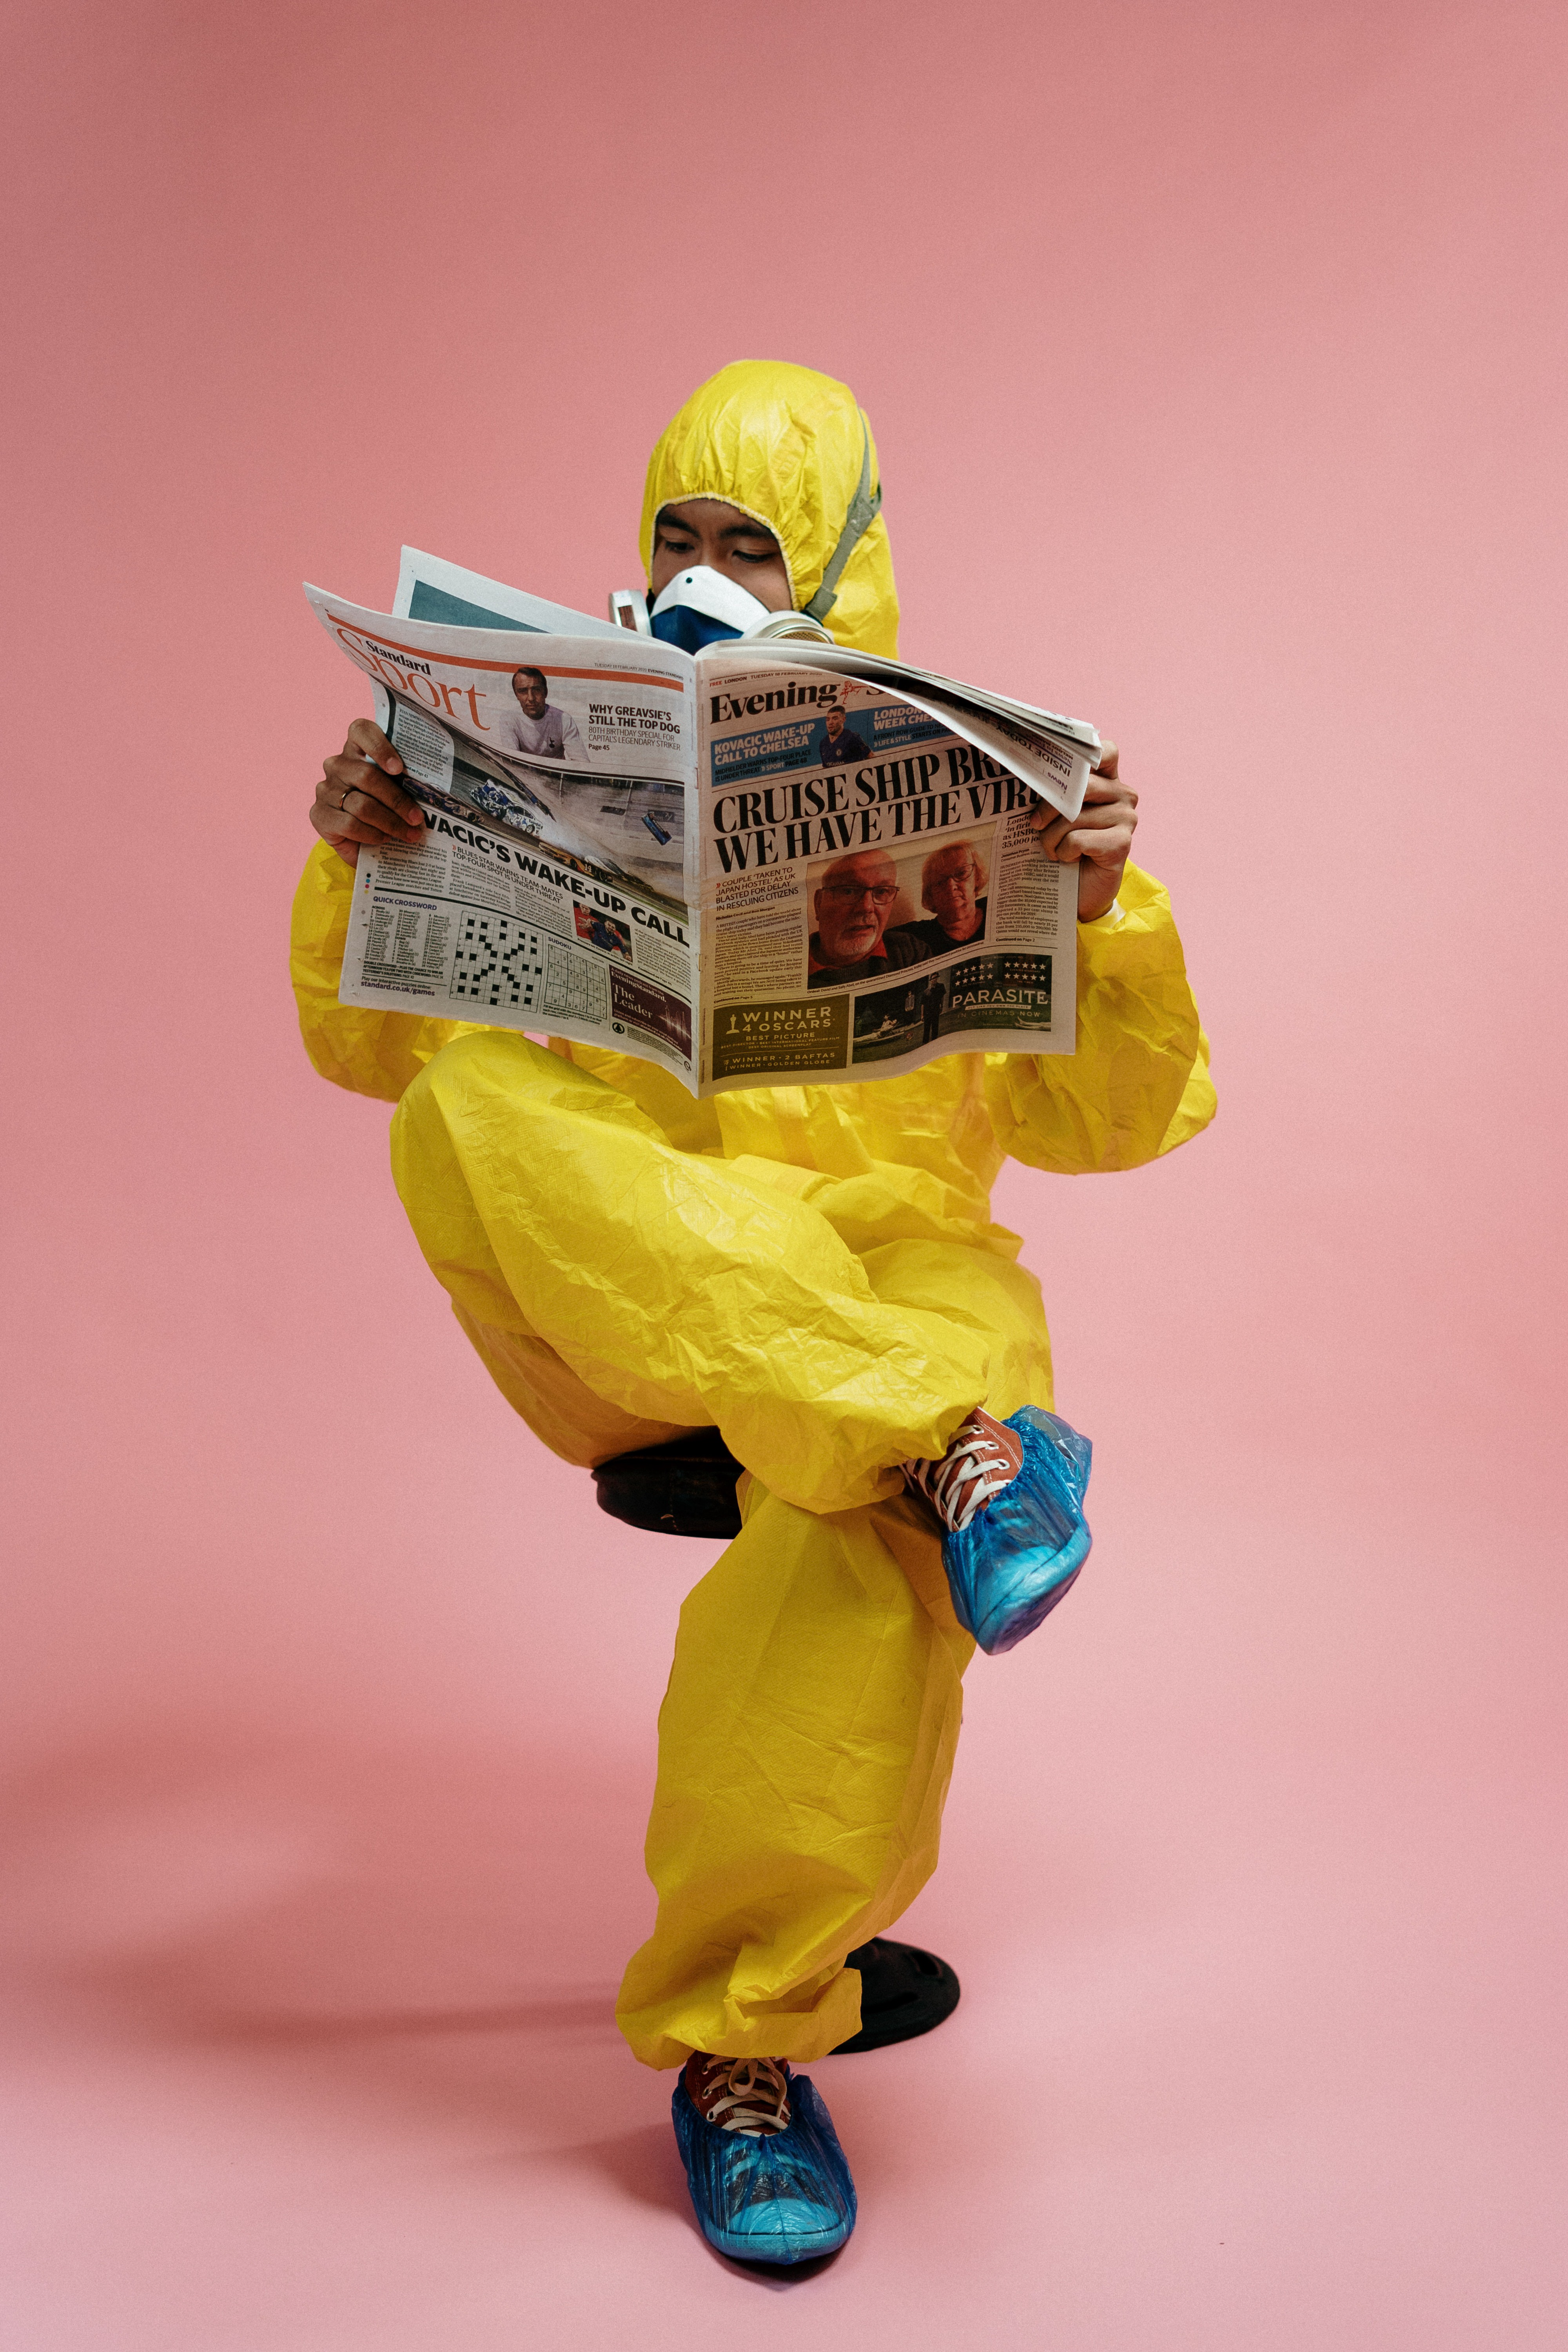 A man in a protective suit reads a newspaper